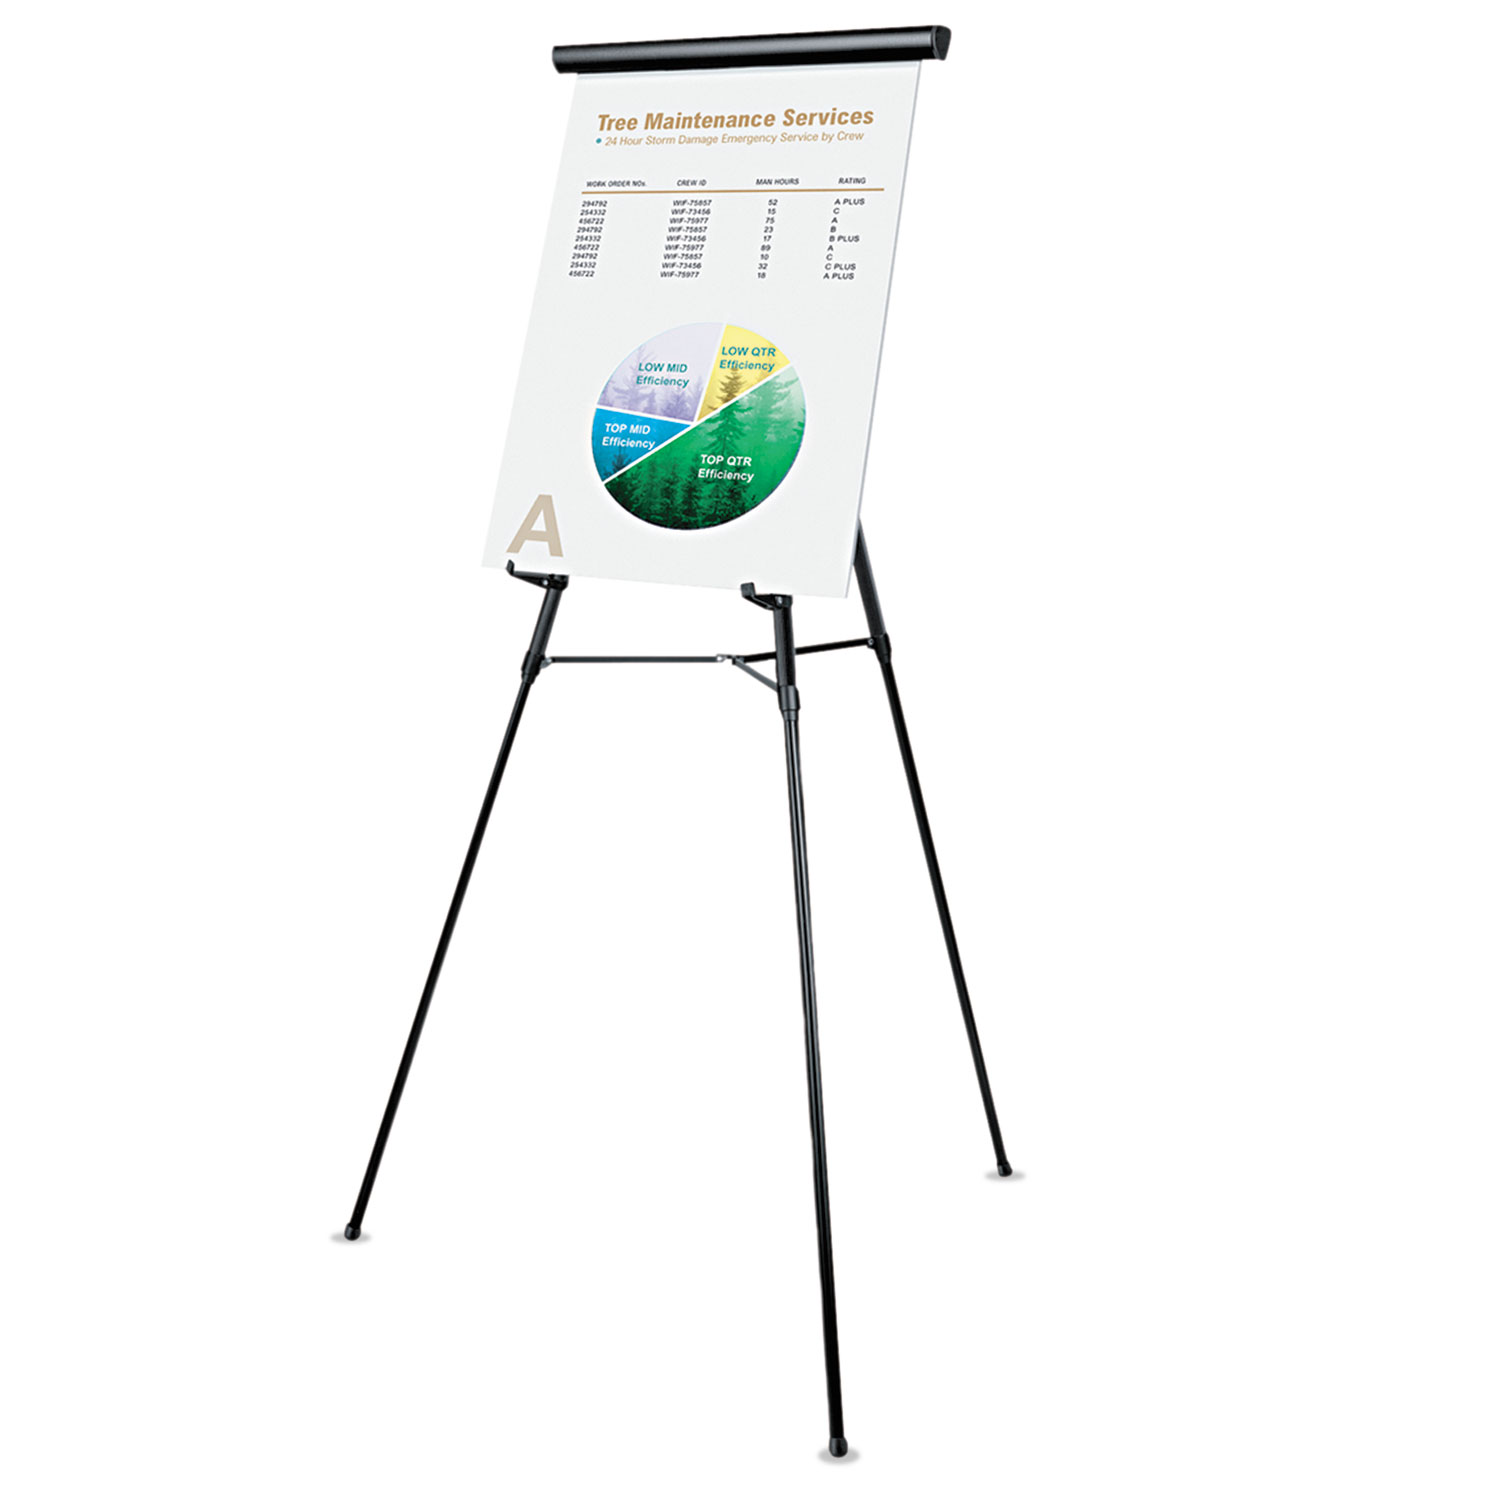 3 Leg Telescoping Easel With Pad Retainer Adjusts 34 To